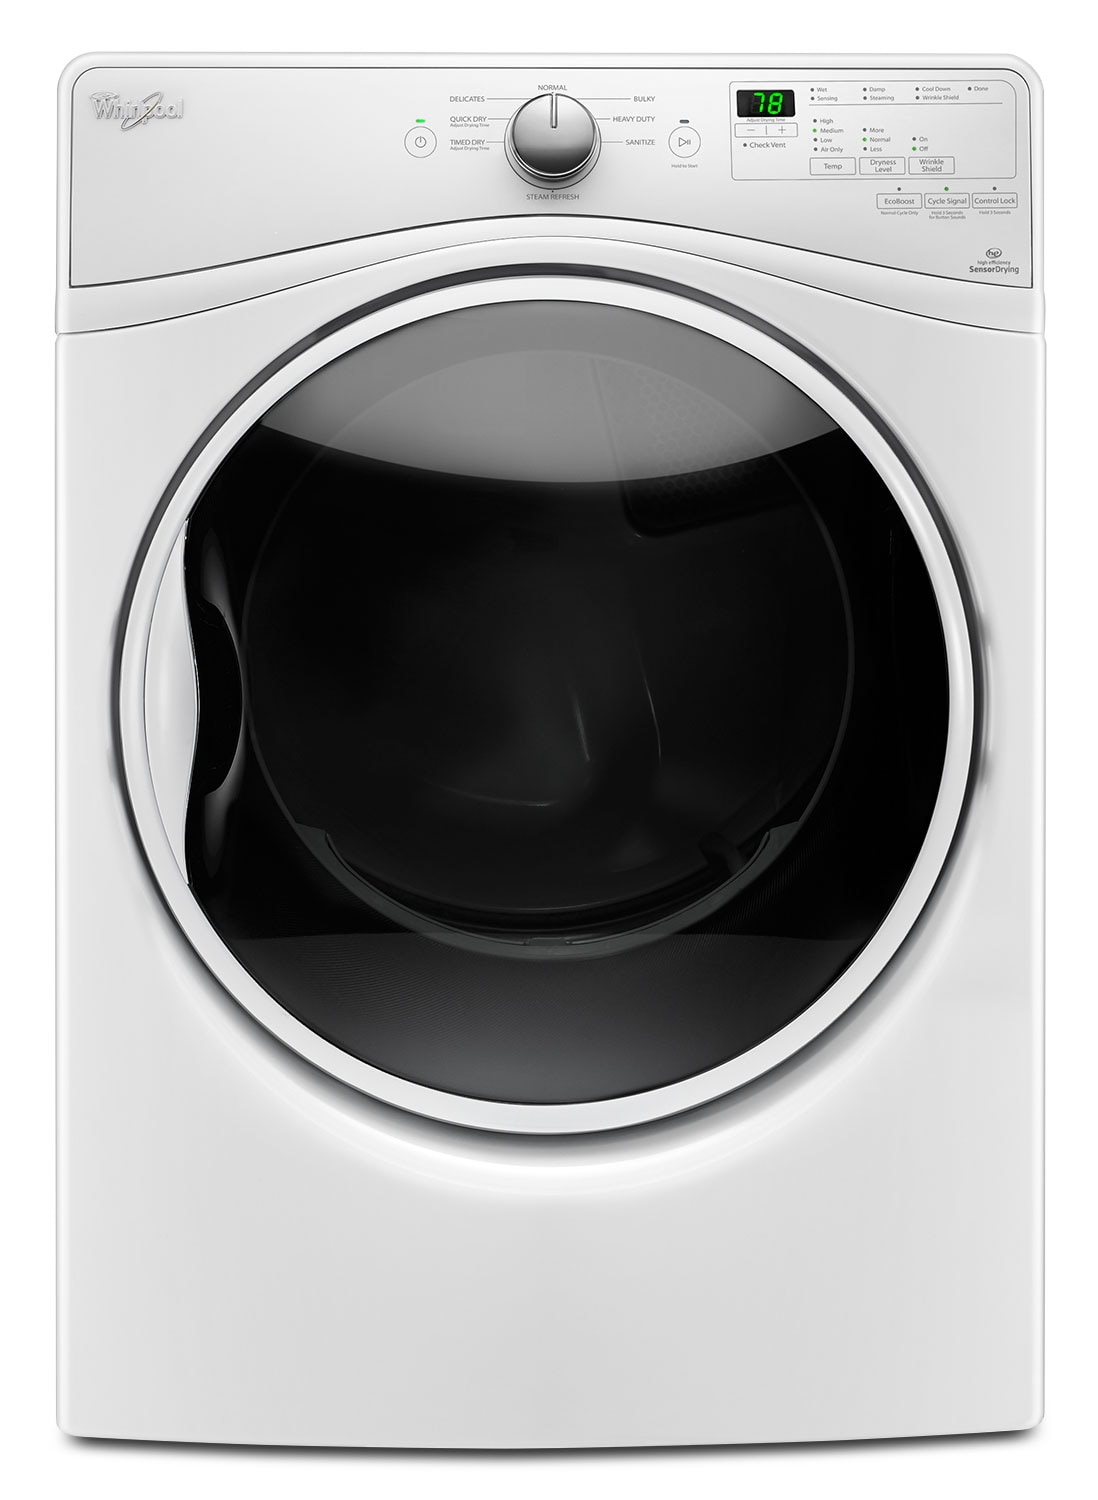 Whirlpool 7.0 Cu. Ft. Electric Dryer – YWED85HEFW